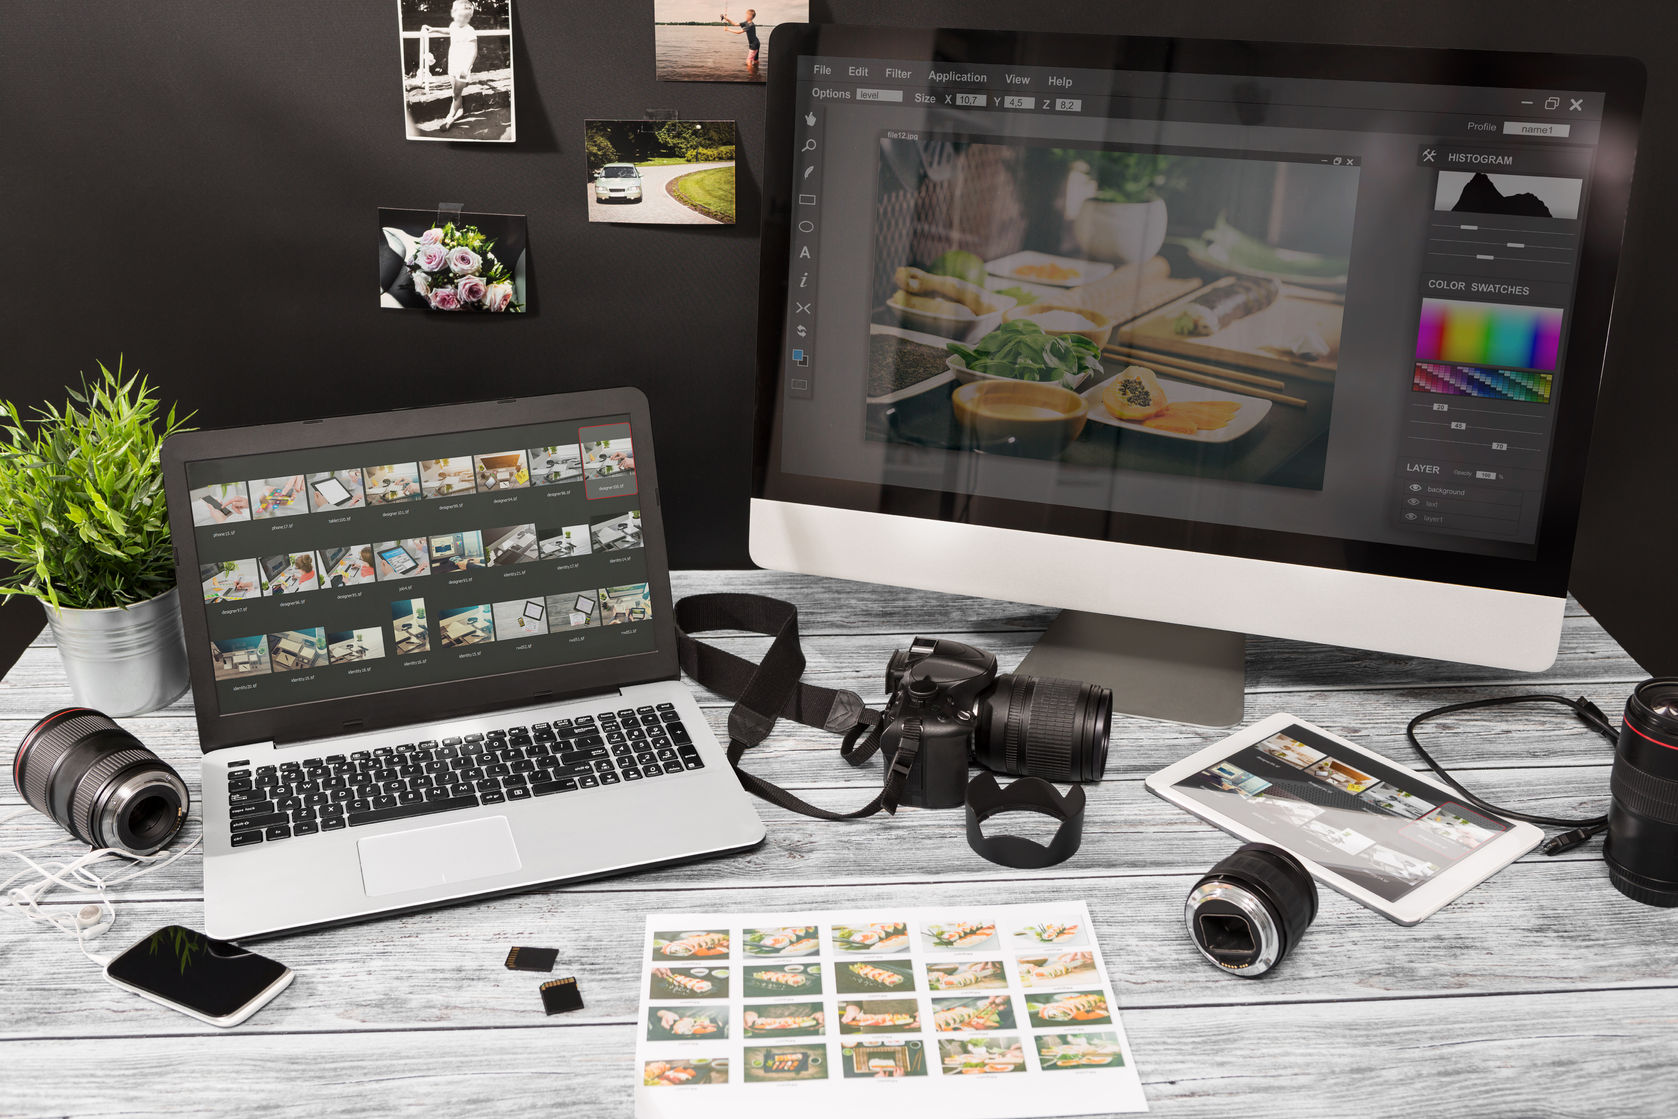 How To Download Adobe Stock Images Without Watermark